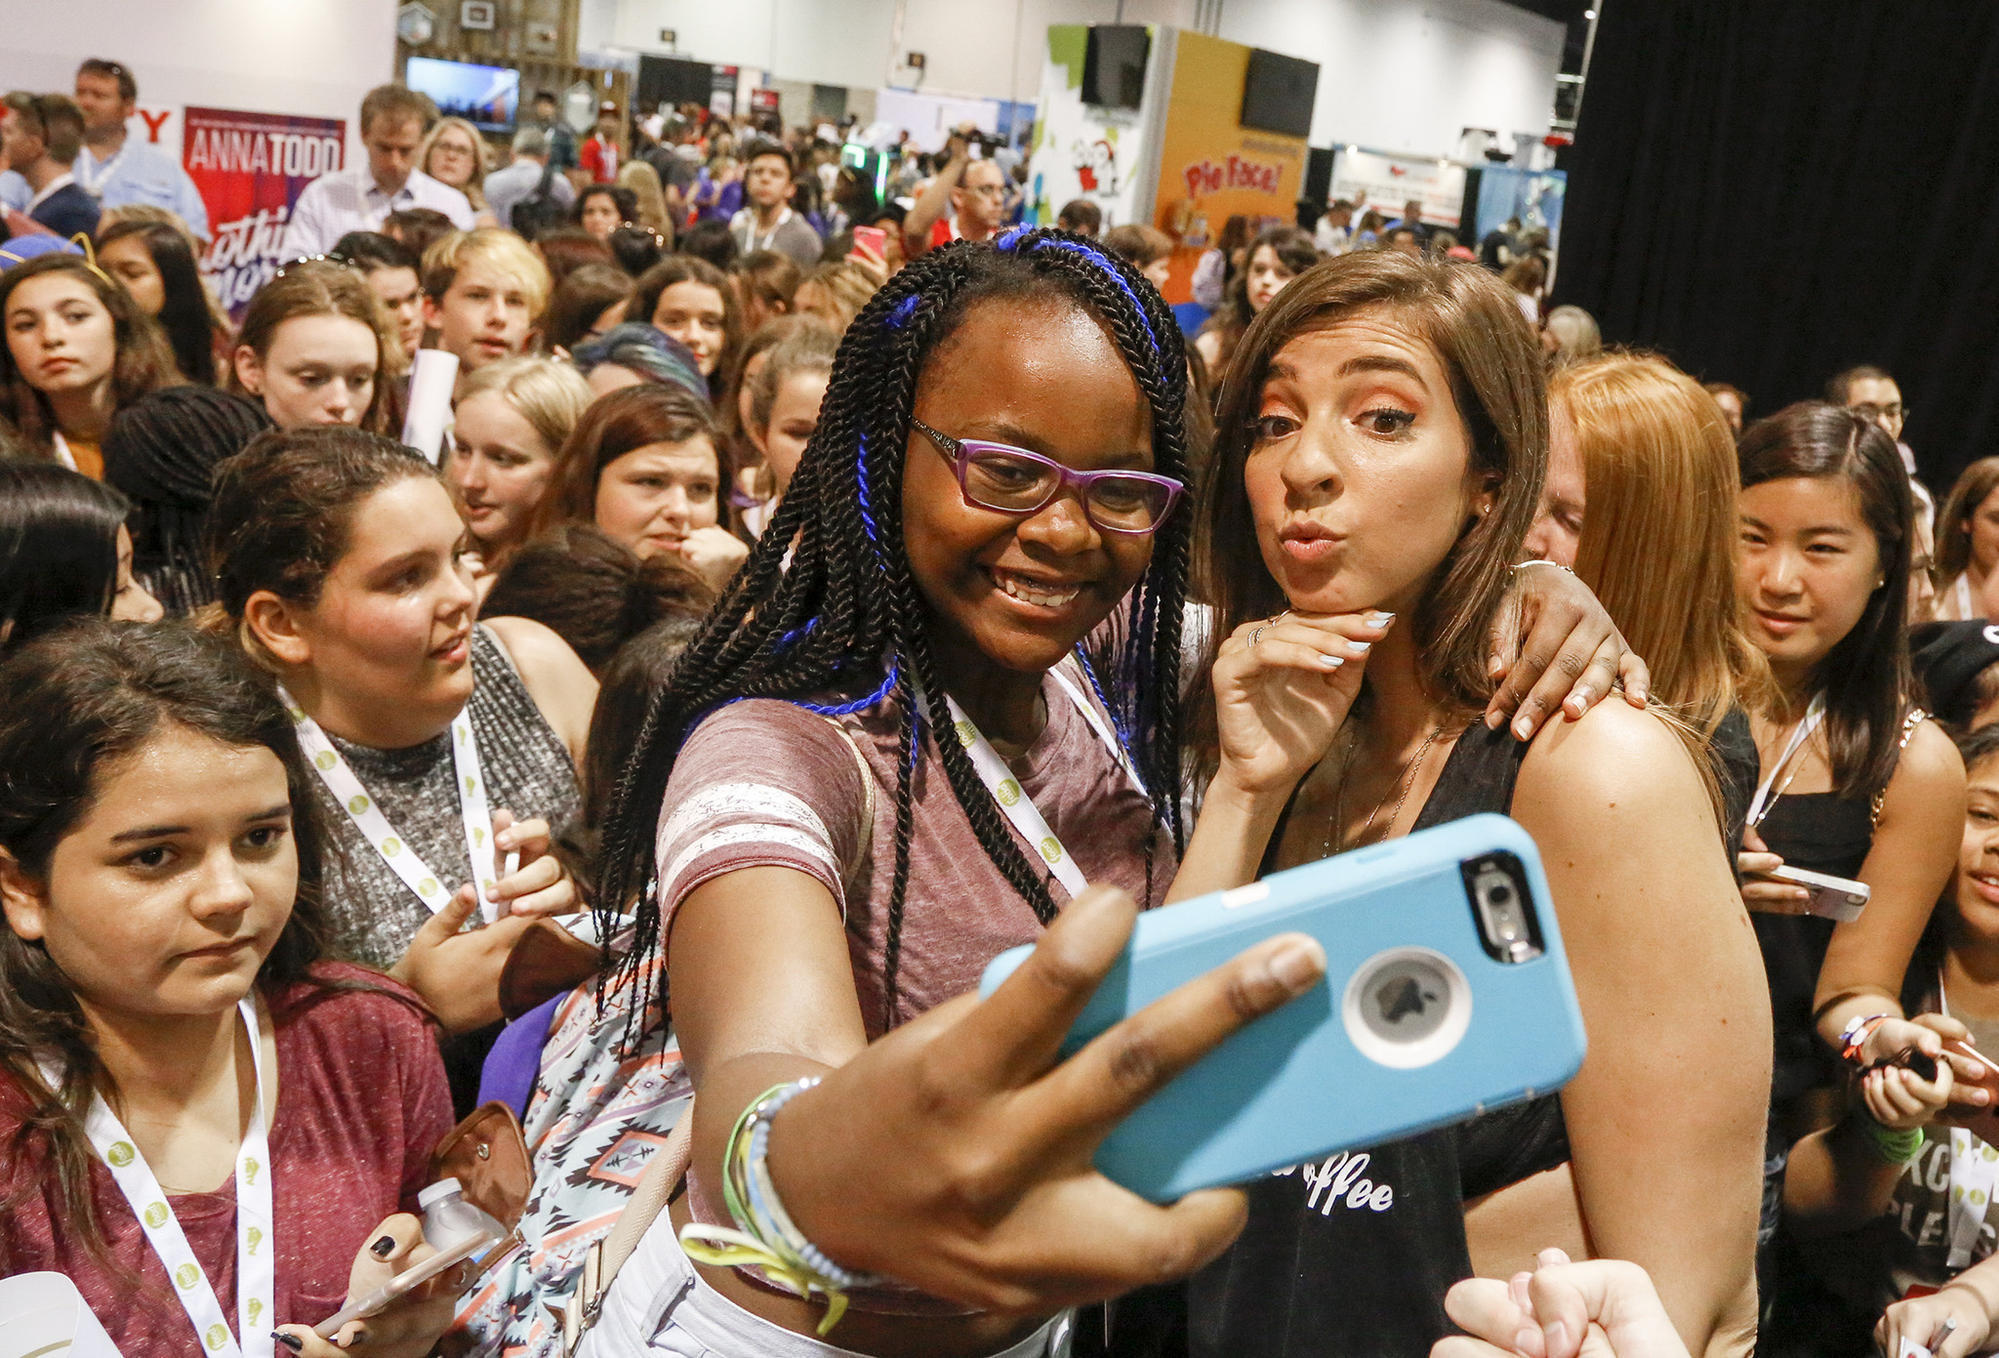 Scenes From Vidcon Fans And Stars Share The Joy Of Mixing